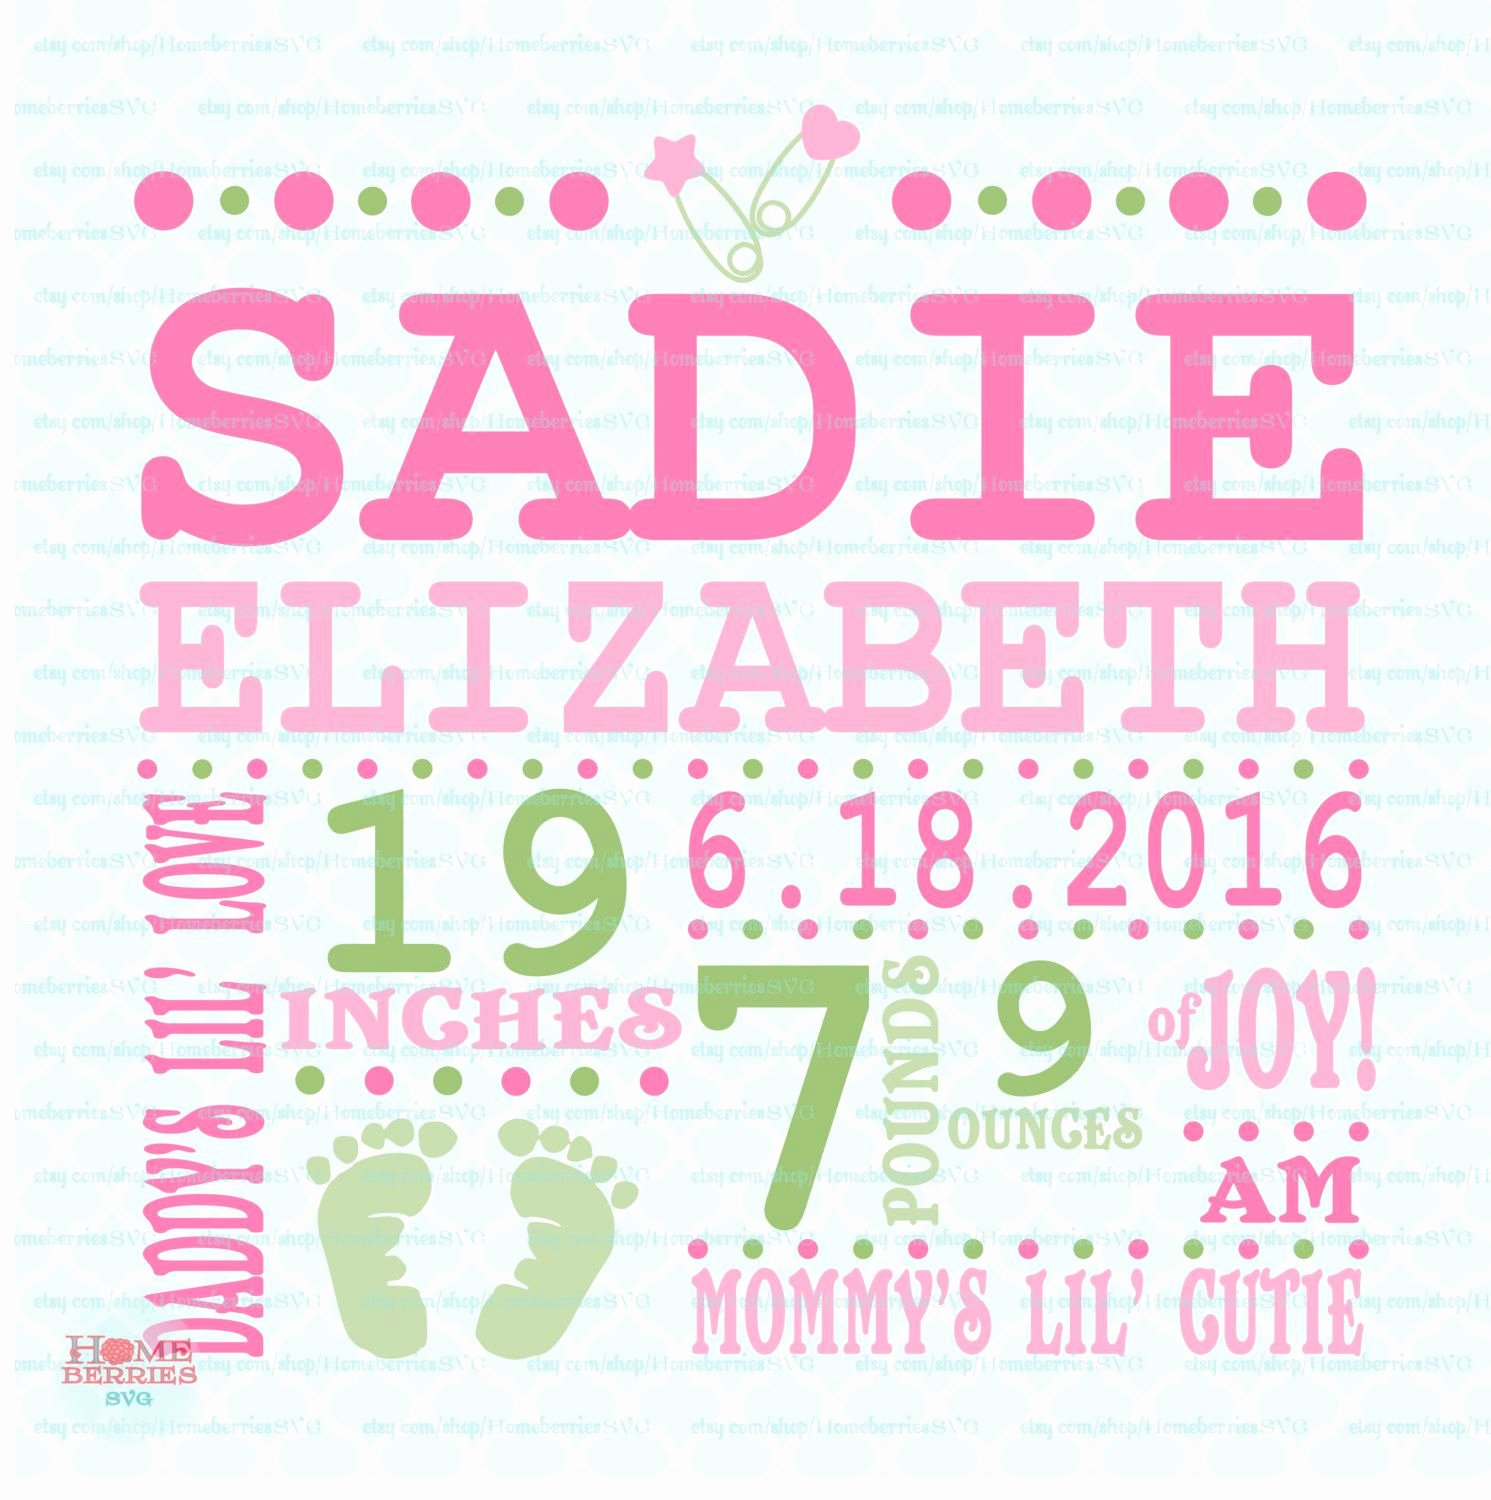 Free Birth Announcements Templates Inspirational Birth Announcement Template Svg Birth Svg Baby Svg Announcement Svg Birth Facts Svg Birth Stats